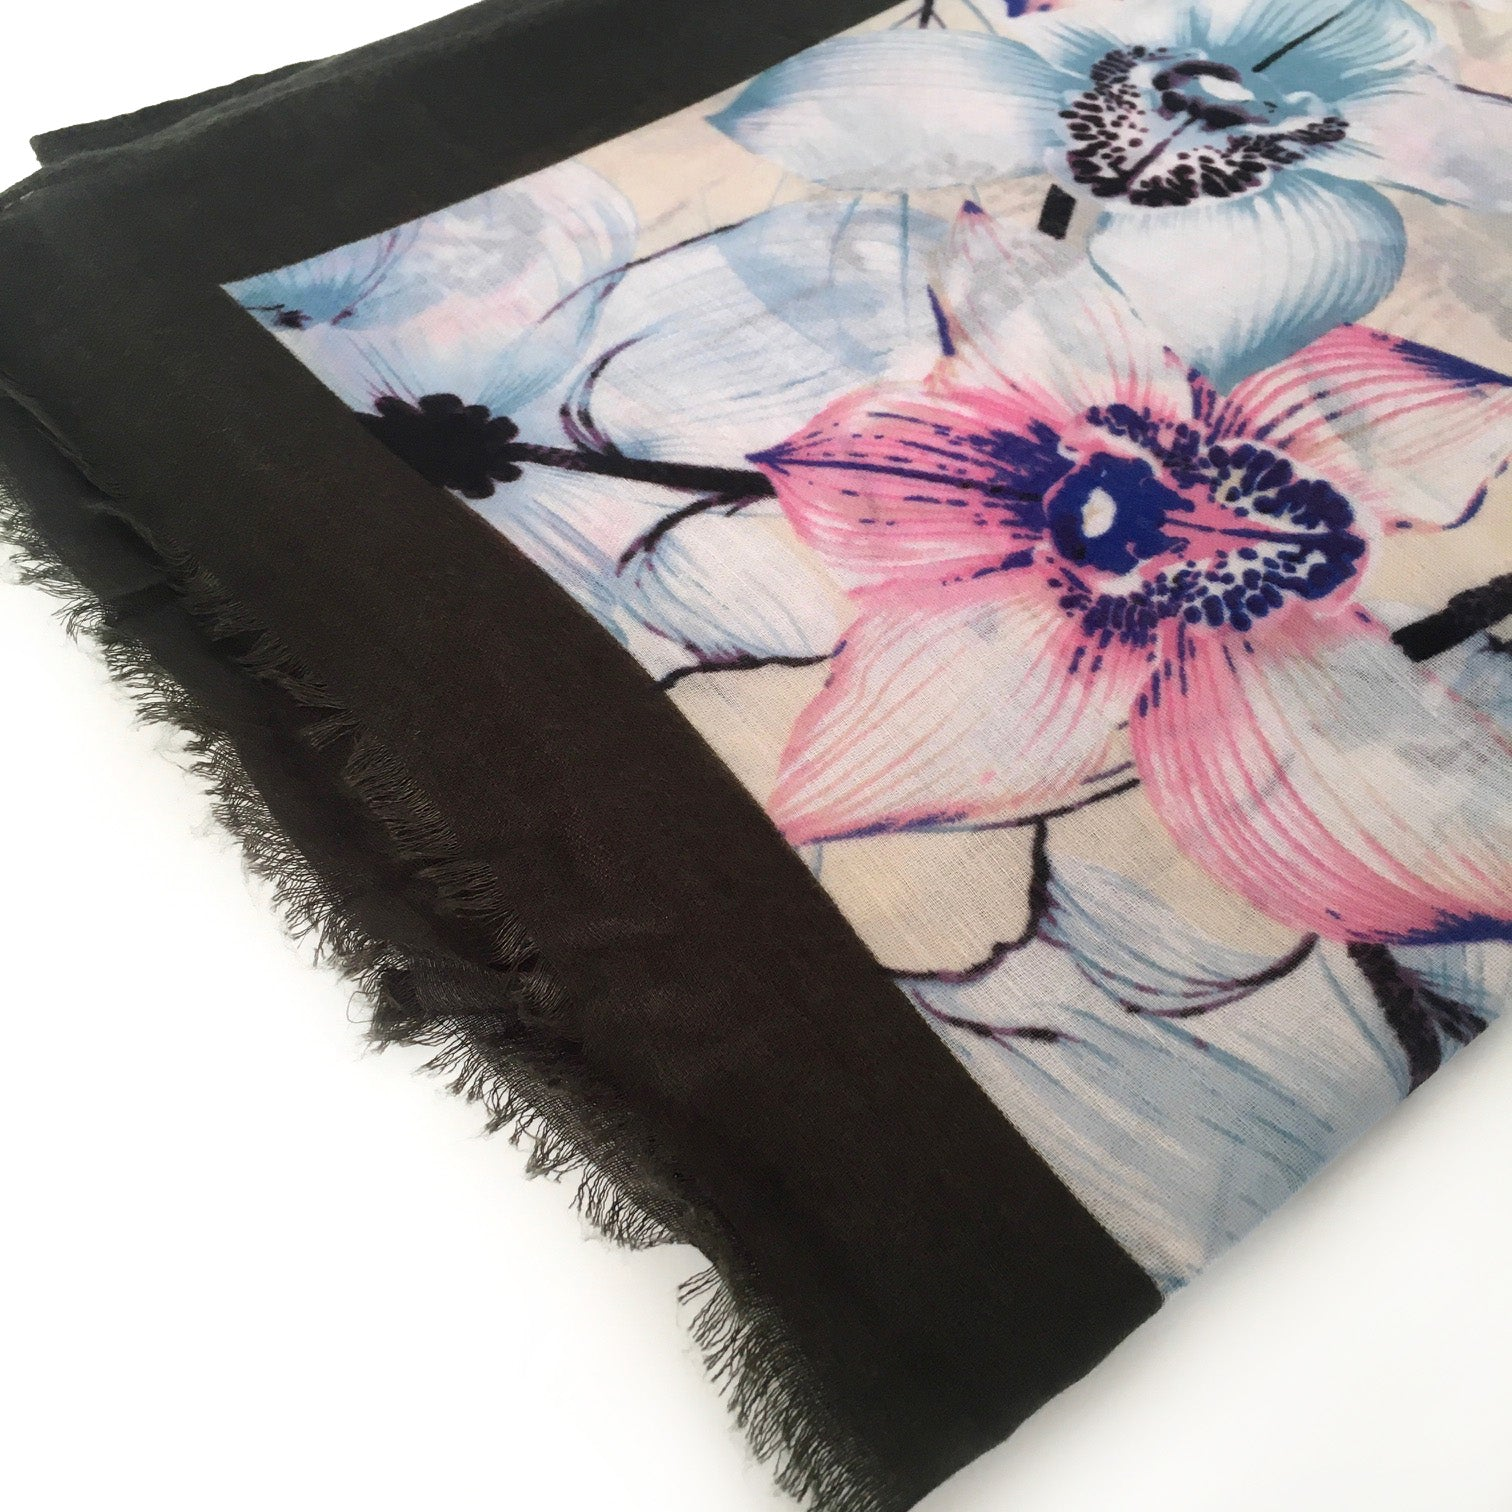 A-SHU LARGE DARK BROWN BORDER FLORAL PRINT SCARF - A-SHU.CO.UK